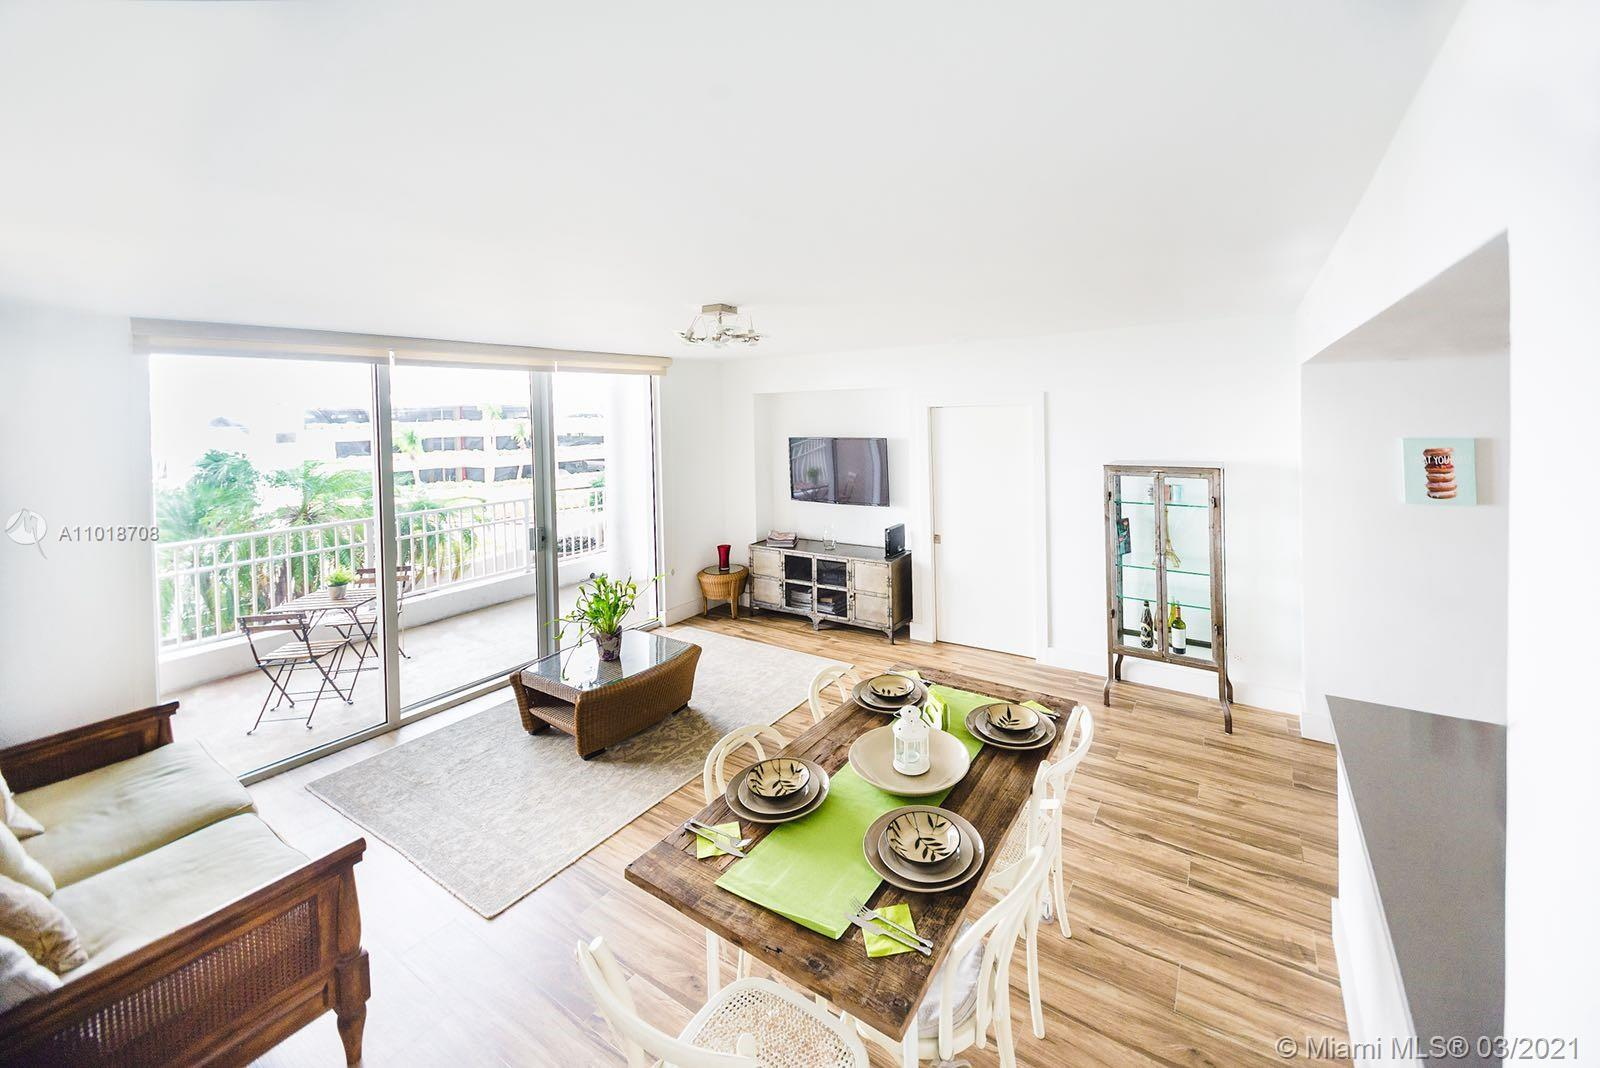 Live in the peaceful Brickell Key with everything this secluded island has to offer on this amazing